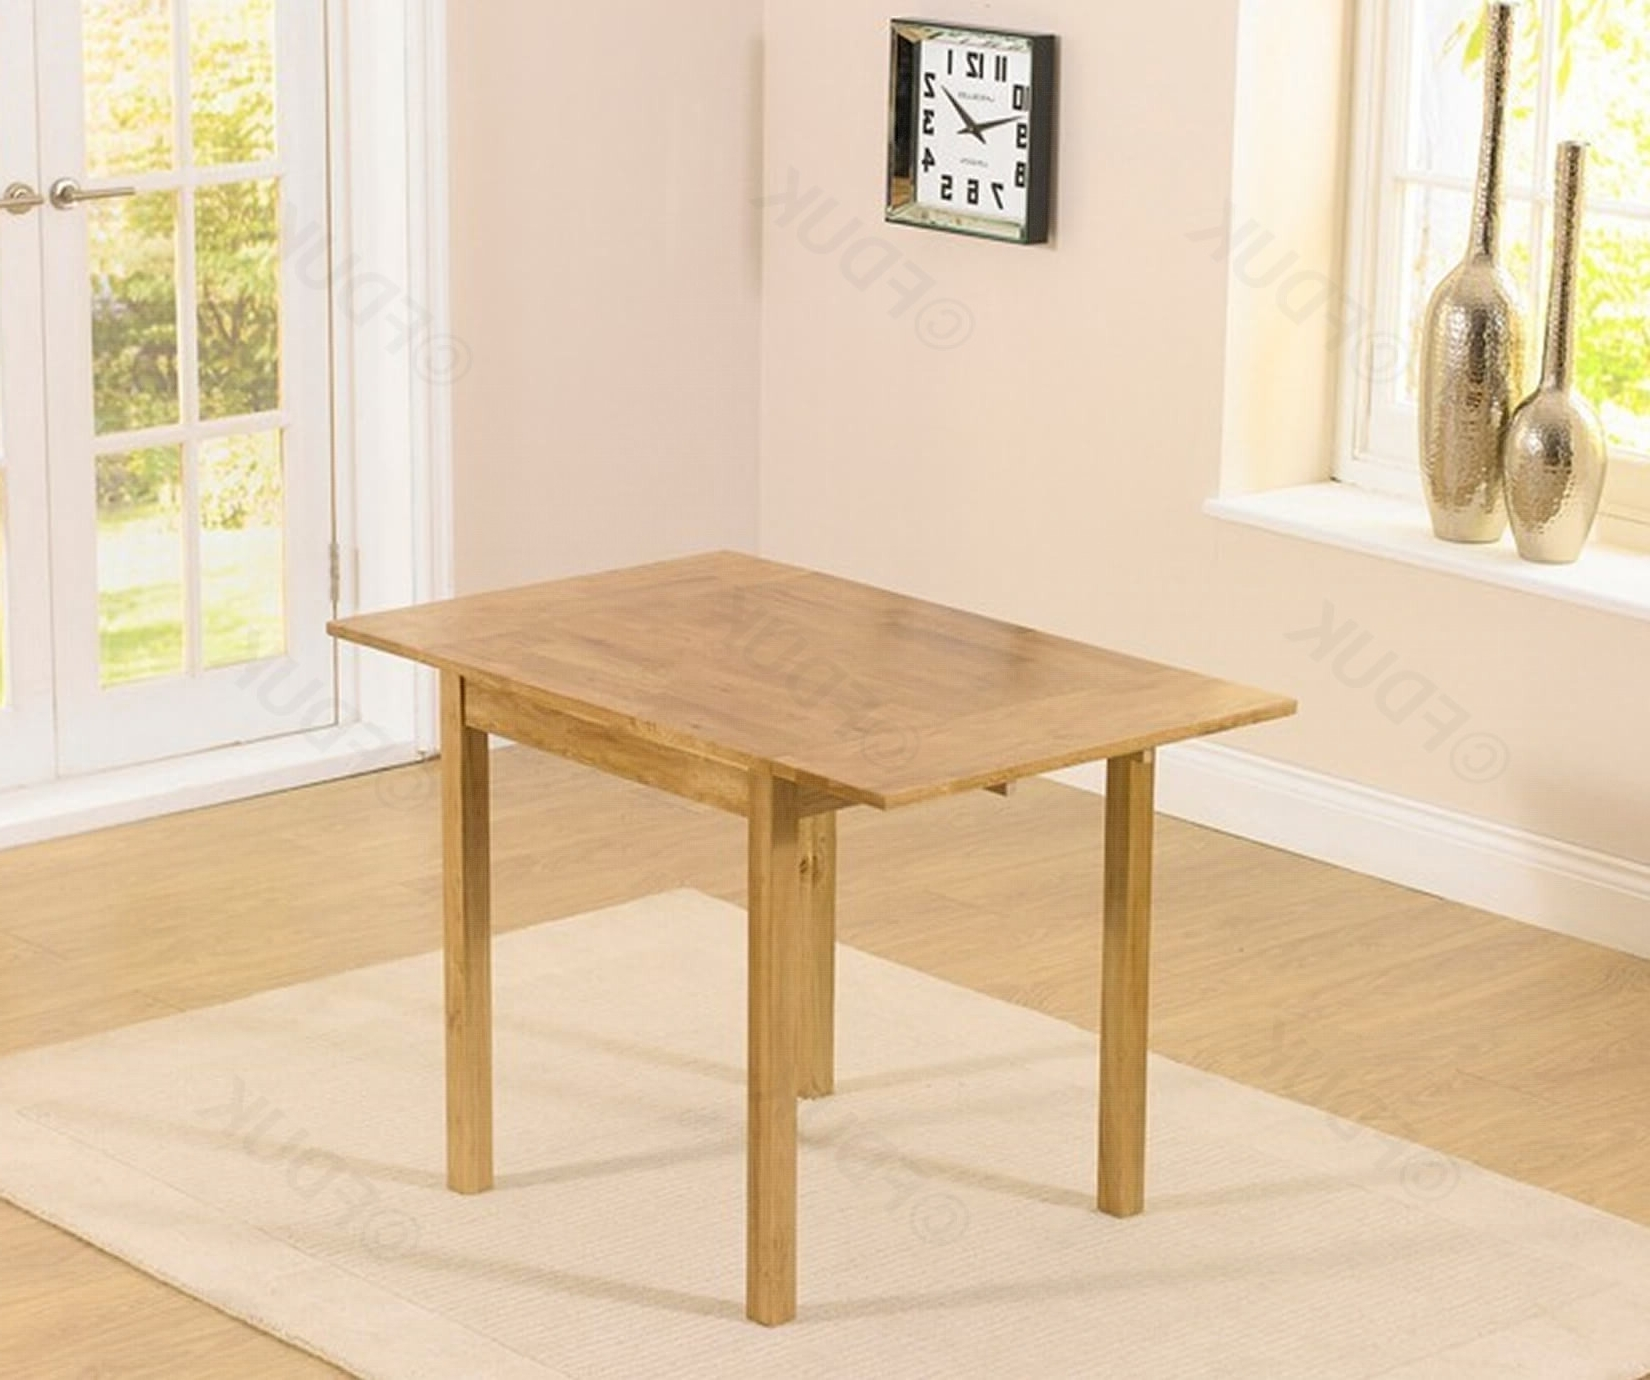 Promo 70Cm Rectangular Extending Dining Table Only With Regard To Extending Rectangular Dining Tables (View 14 of 25)